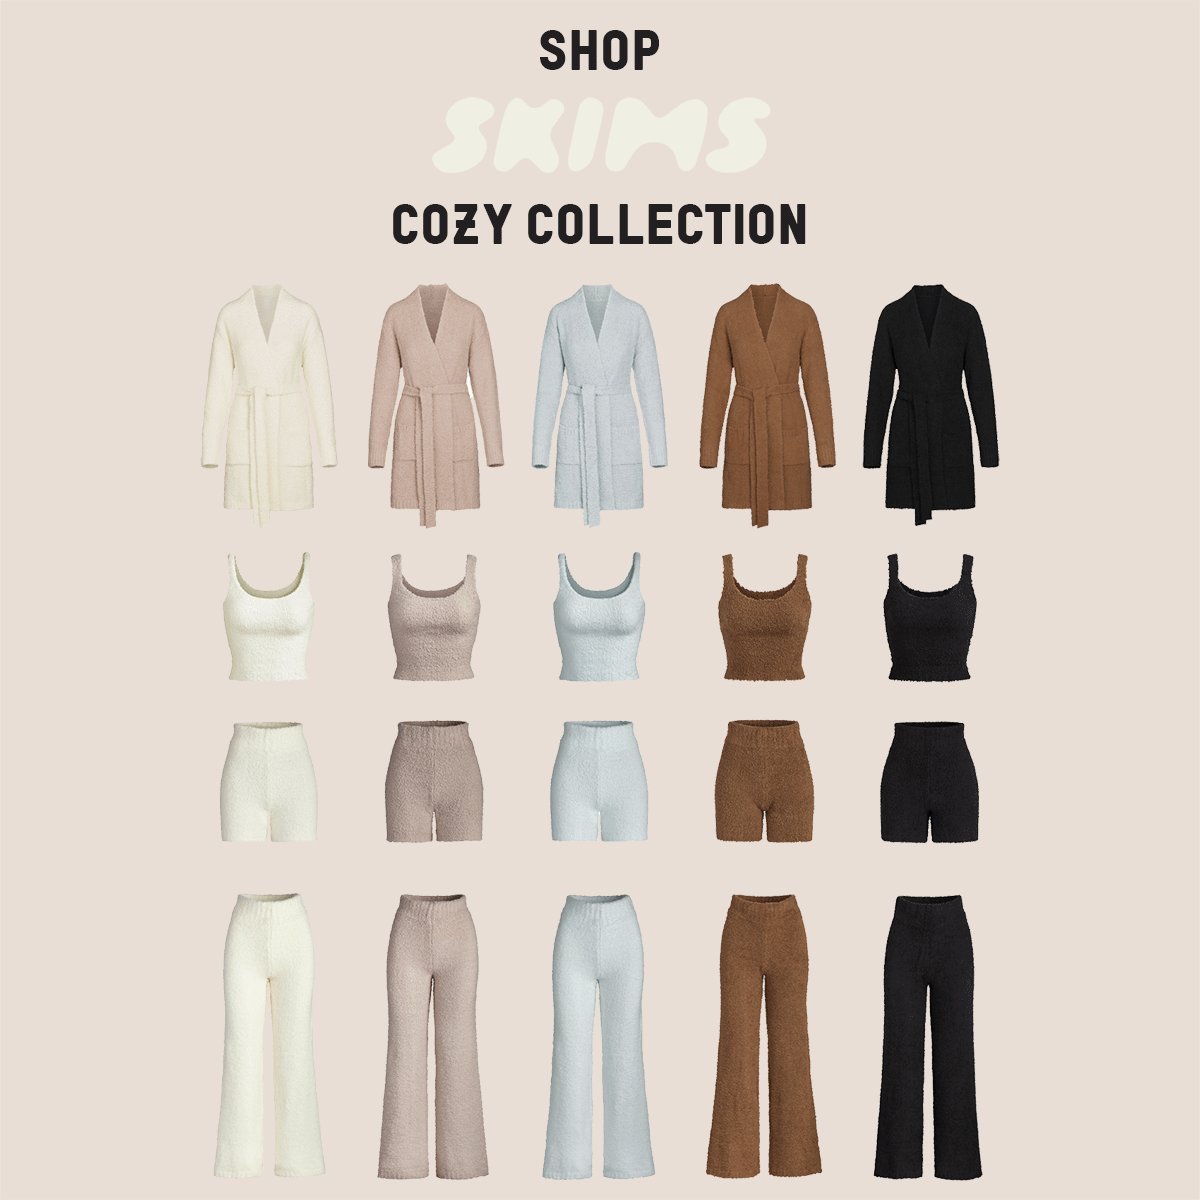 Shop @SKIMS Cozy Collection + New Short Robes now only at https://t.co/DexaxI8UAI https://t.co/jLwedAN41R